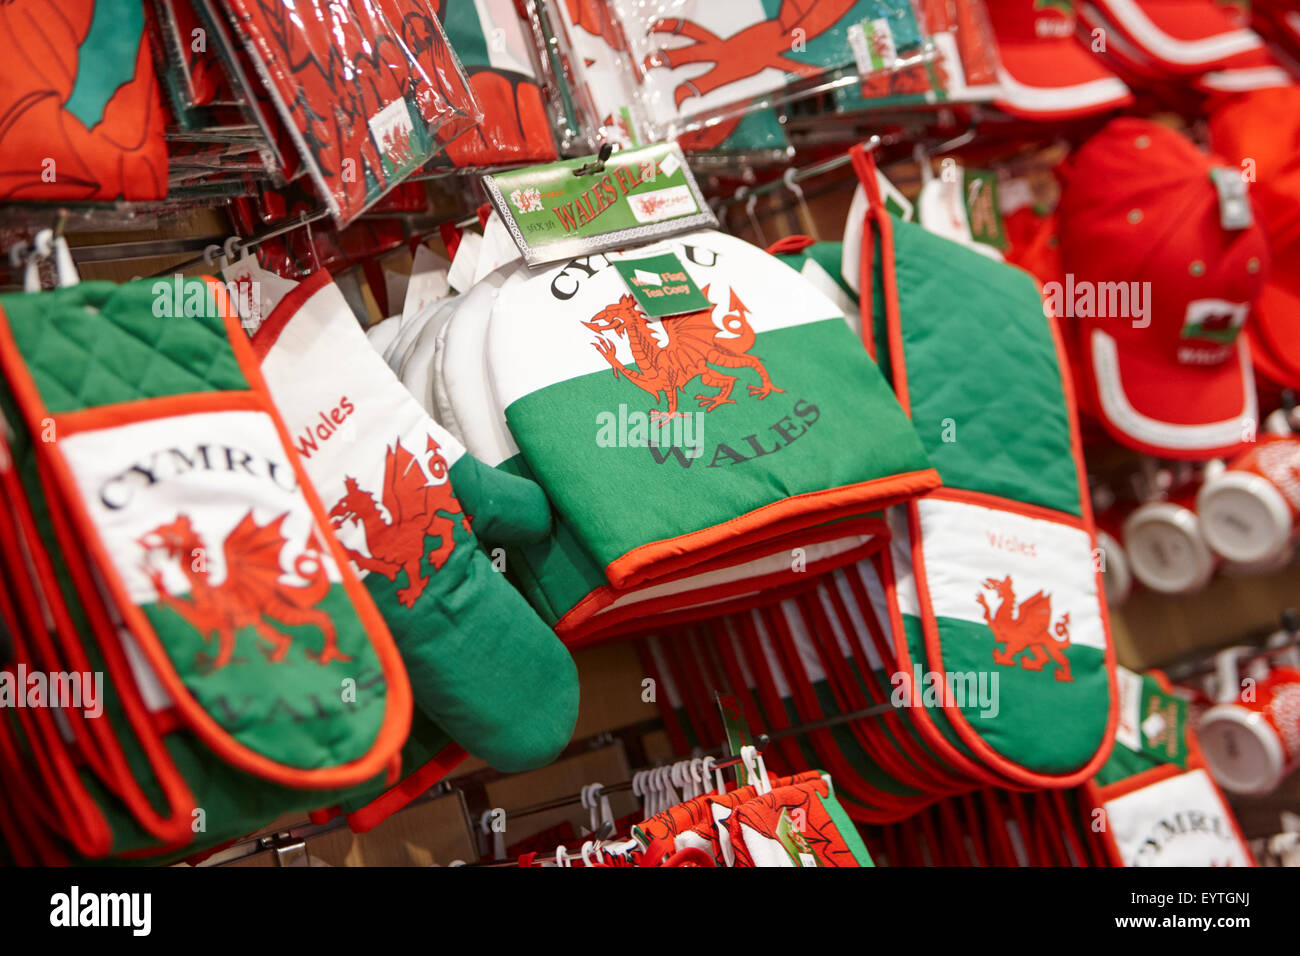 welsh dragon souvenirs and gifts - Stock Image